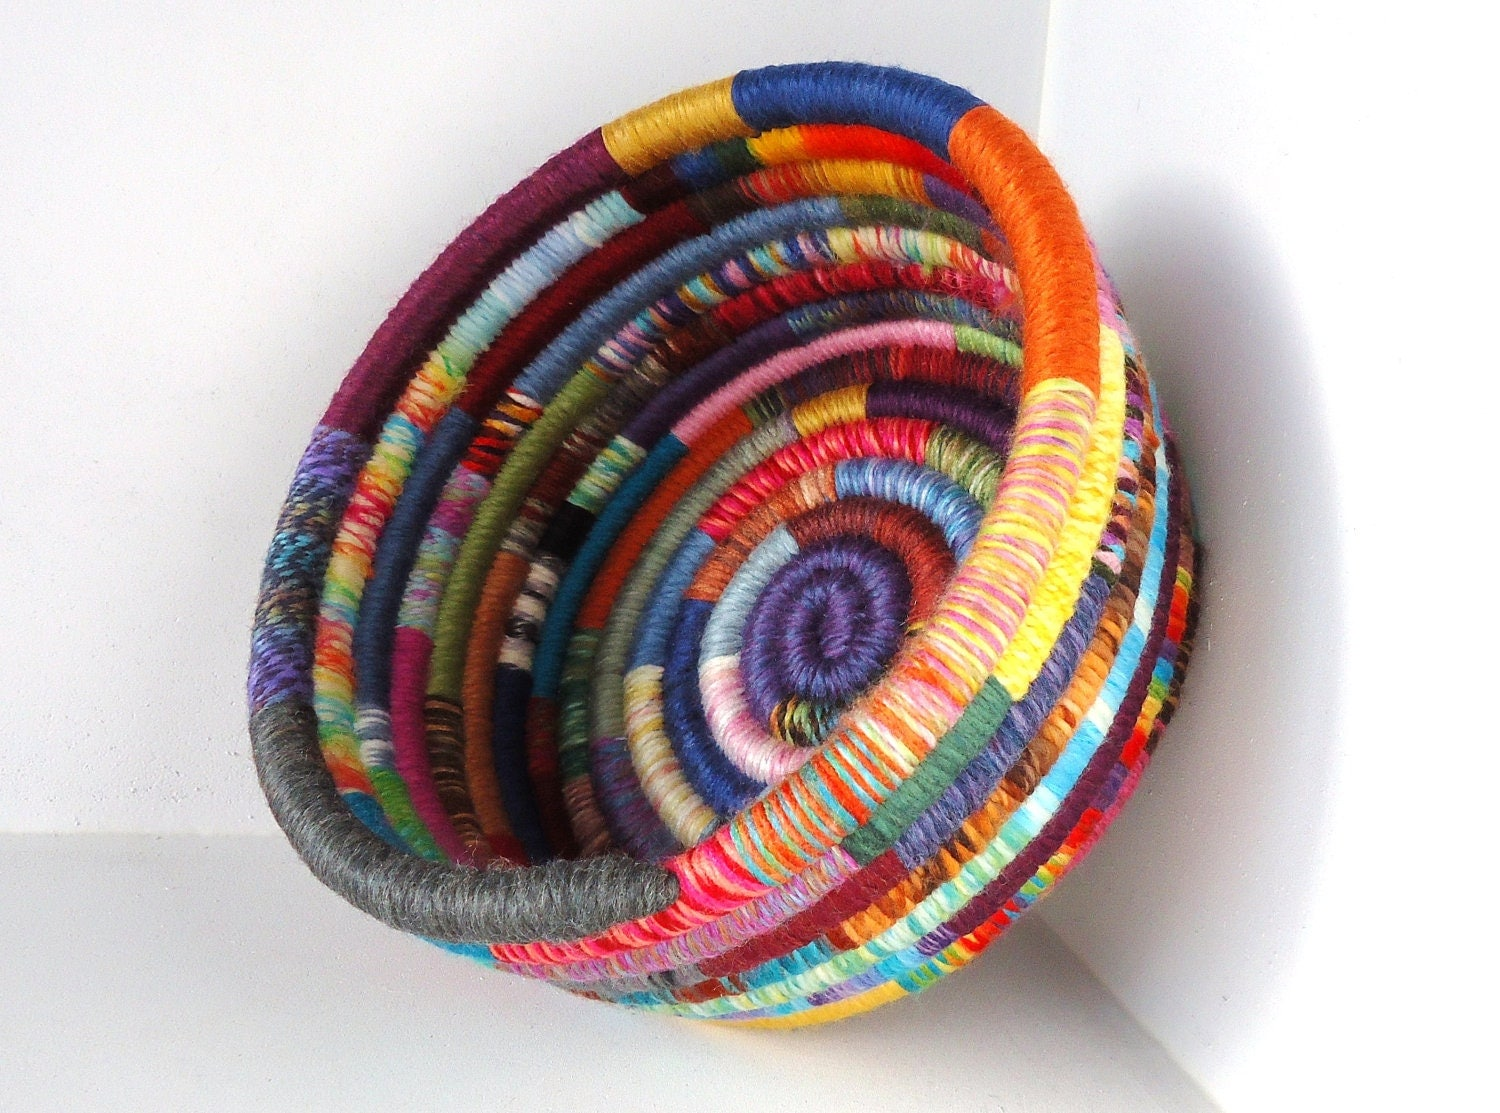 Handmade Basket Making : Handmade basket colorful yarn coiled multicolored